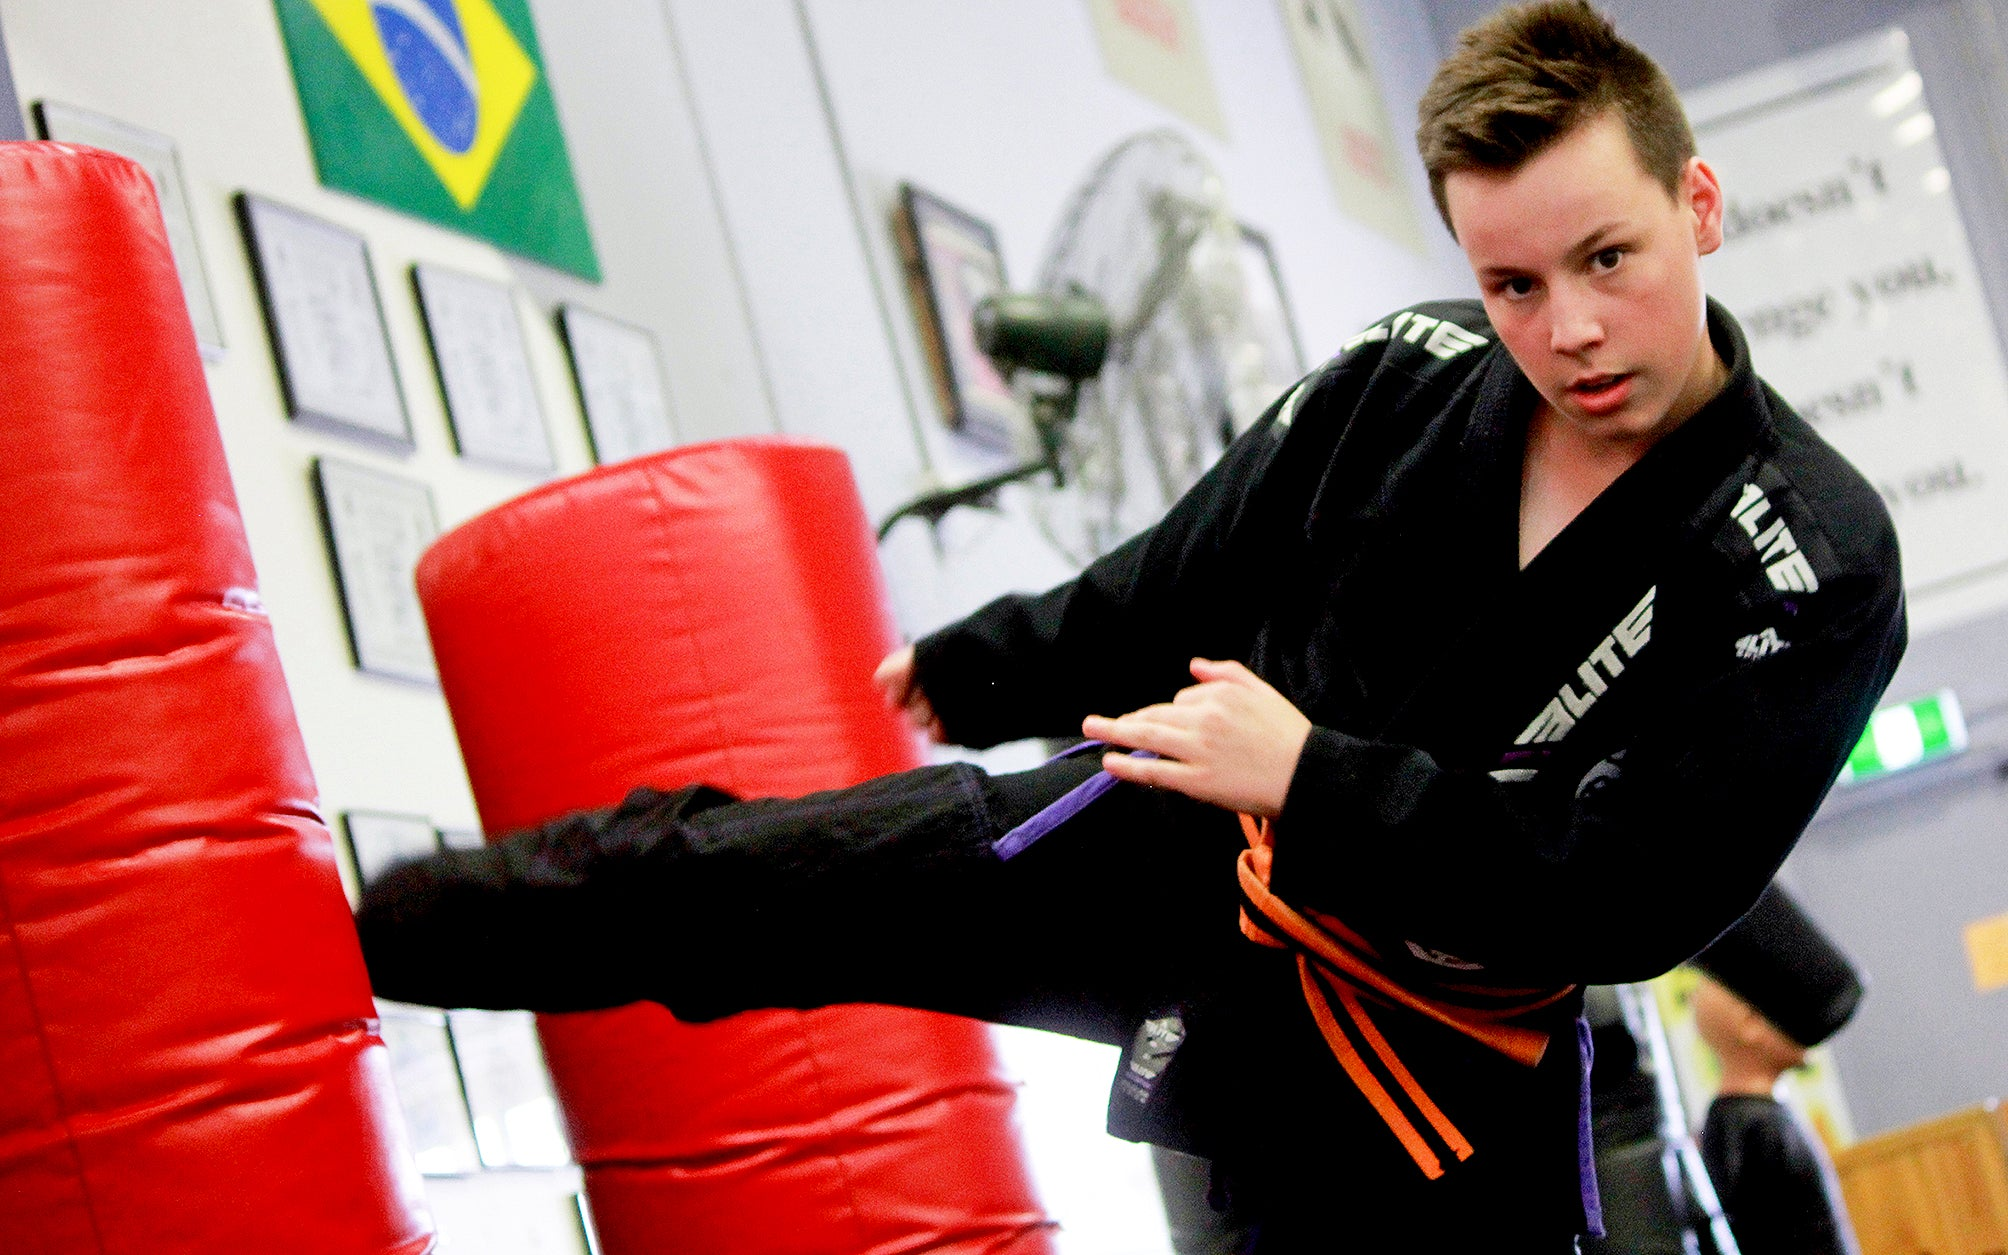 Elite Sports Team Elite Bjj Fighter Jack O'Toole  Image3